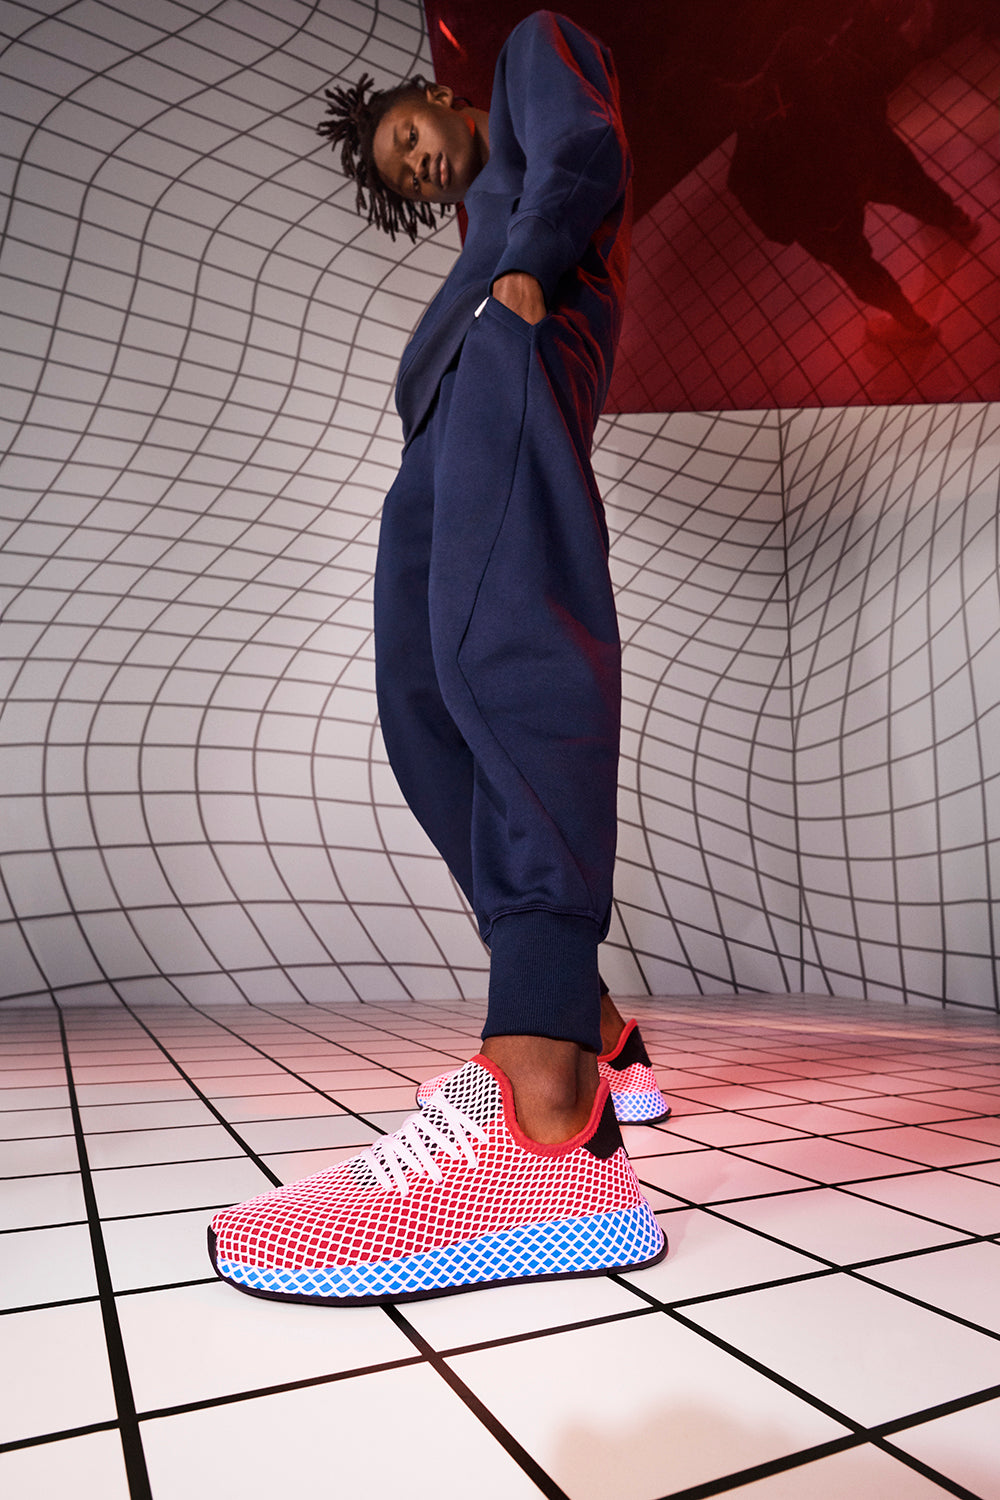 935aff6a0f7f4 adidas Deerupt Runner CQ2624 SOLRED SOLRED BLUBIR Price  £85.00. Launch   Thursday 22nd March  ONLINE 00 001GMT and IN-STORE 11 00GMT